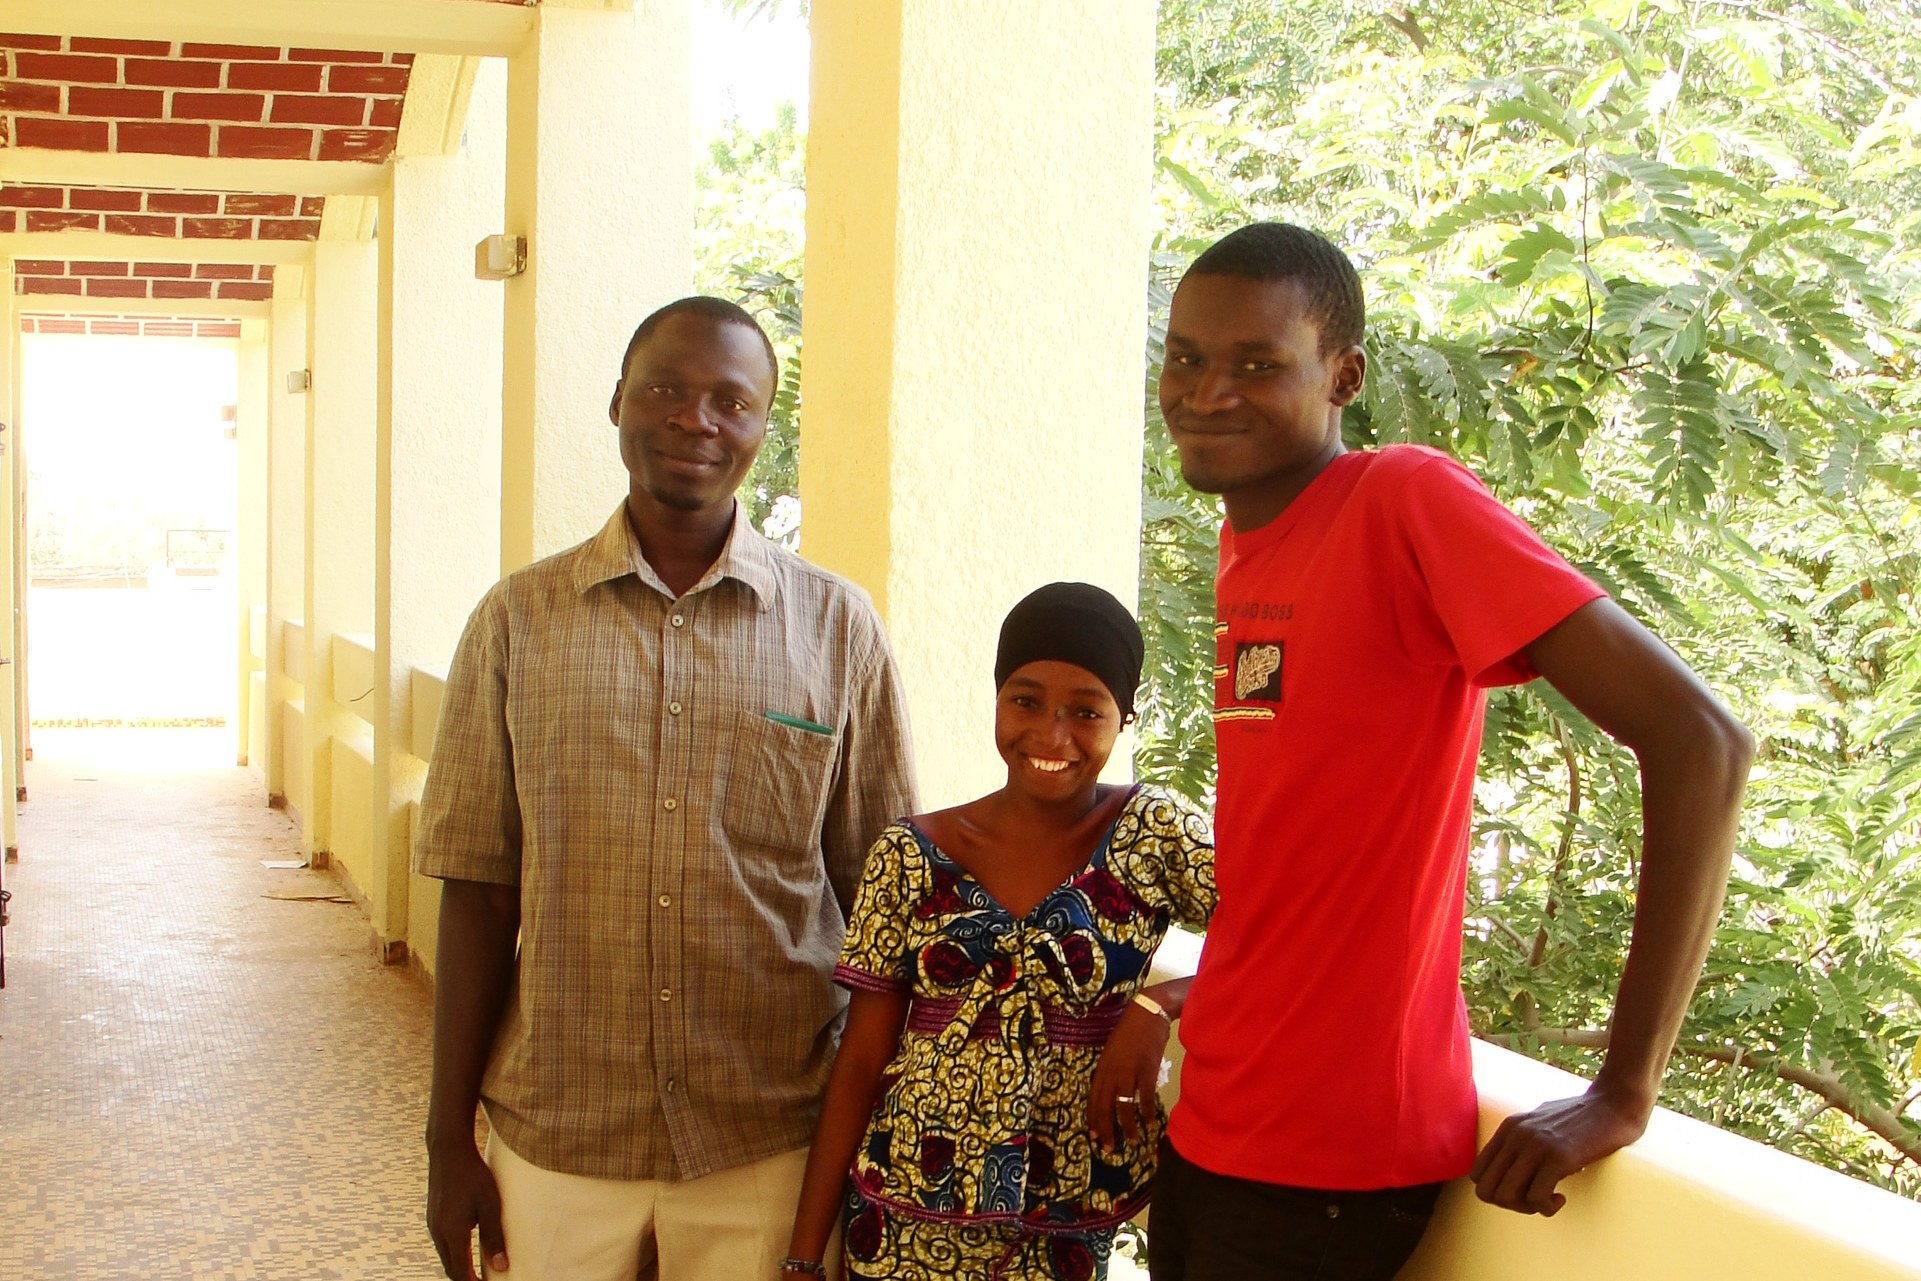 Mahaman, Fatiman, and Abdousalam, students of the Mapping for Niger project.